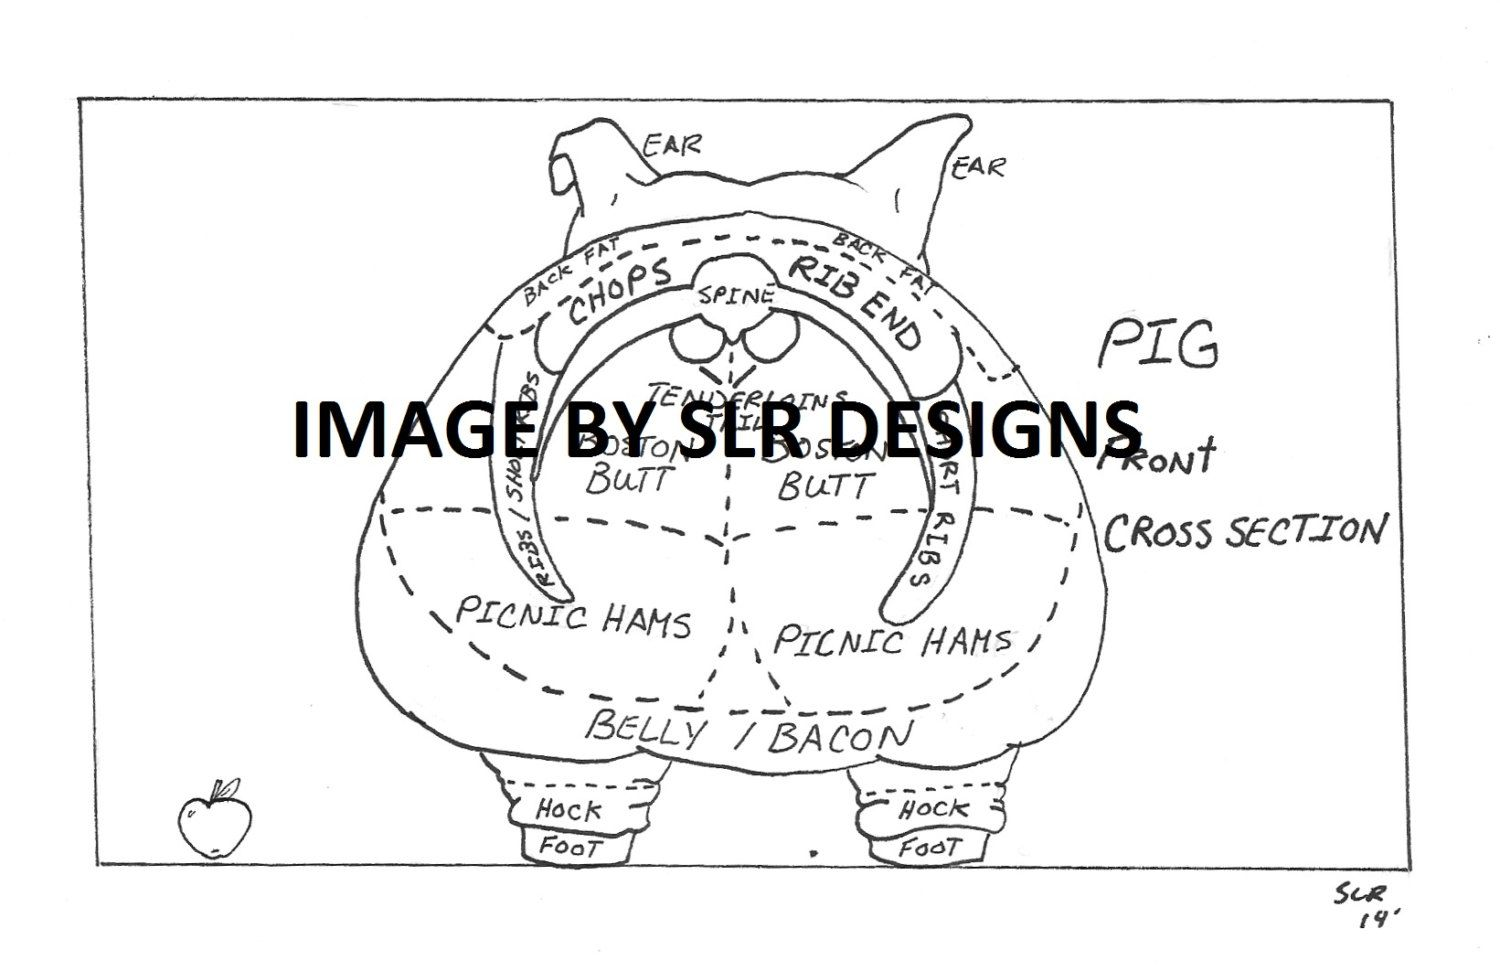 medium resolution of pig diagram front cross section